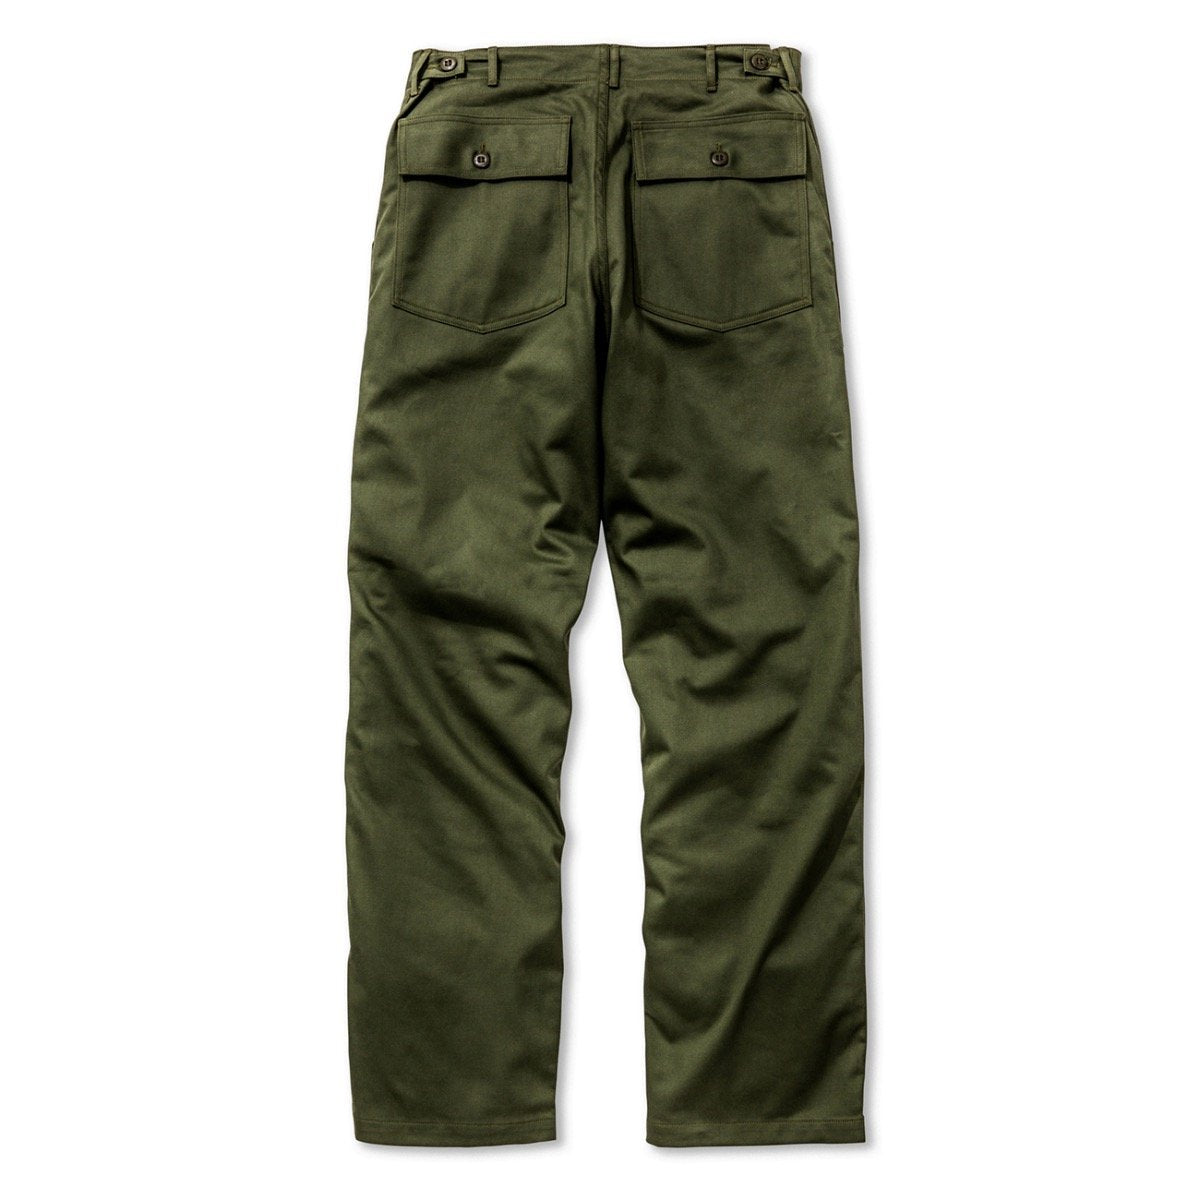 Trousers, Man's, Cotton, Sateen